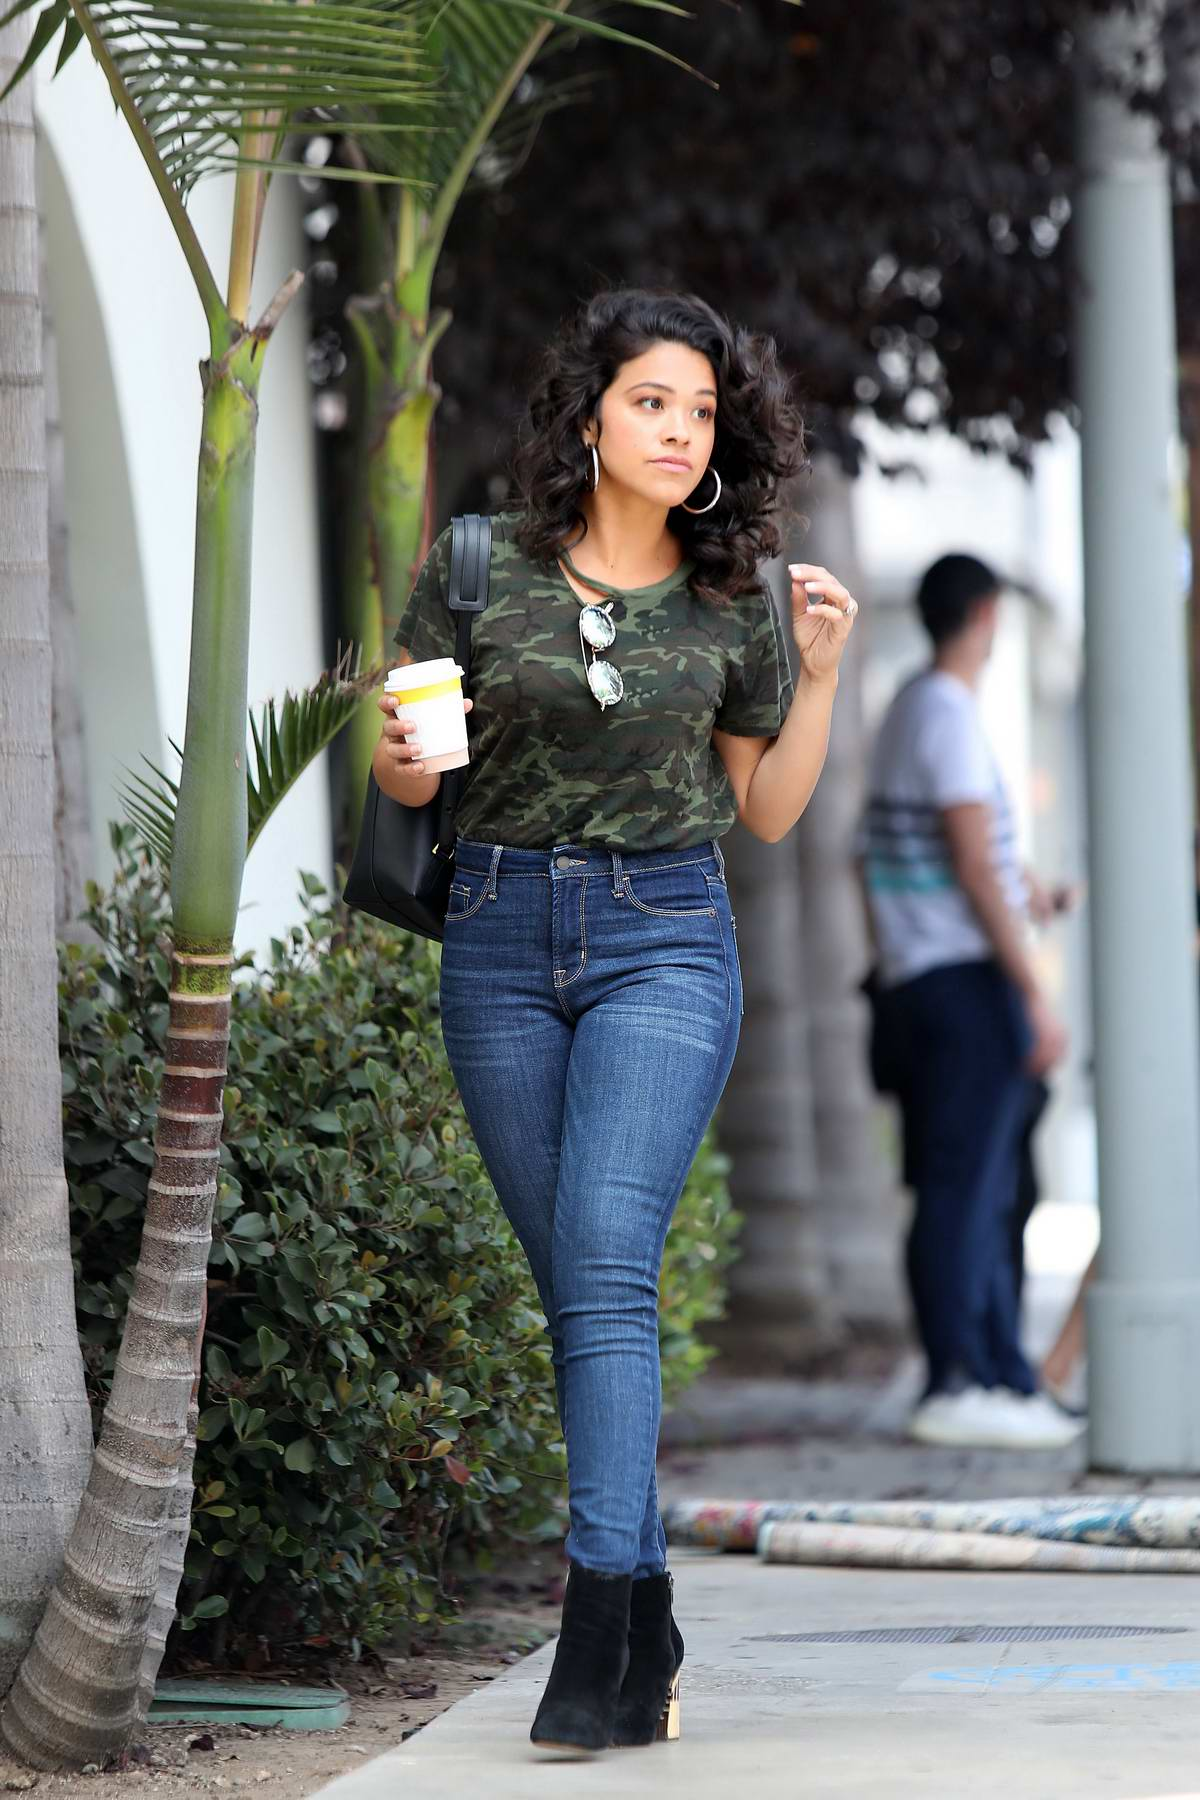 Gina Rodriguez Spotted In A Skinny Jeans And Camo Top